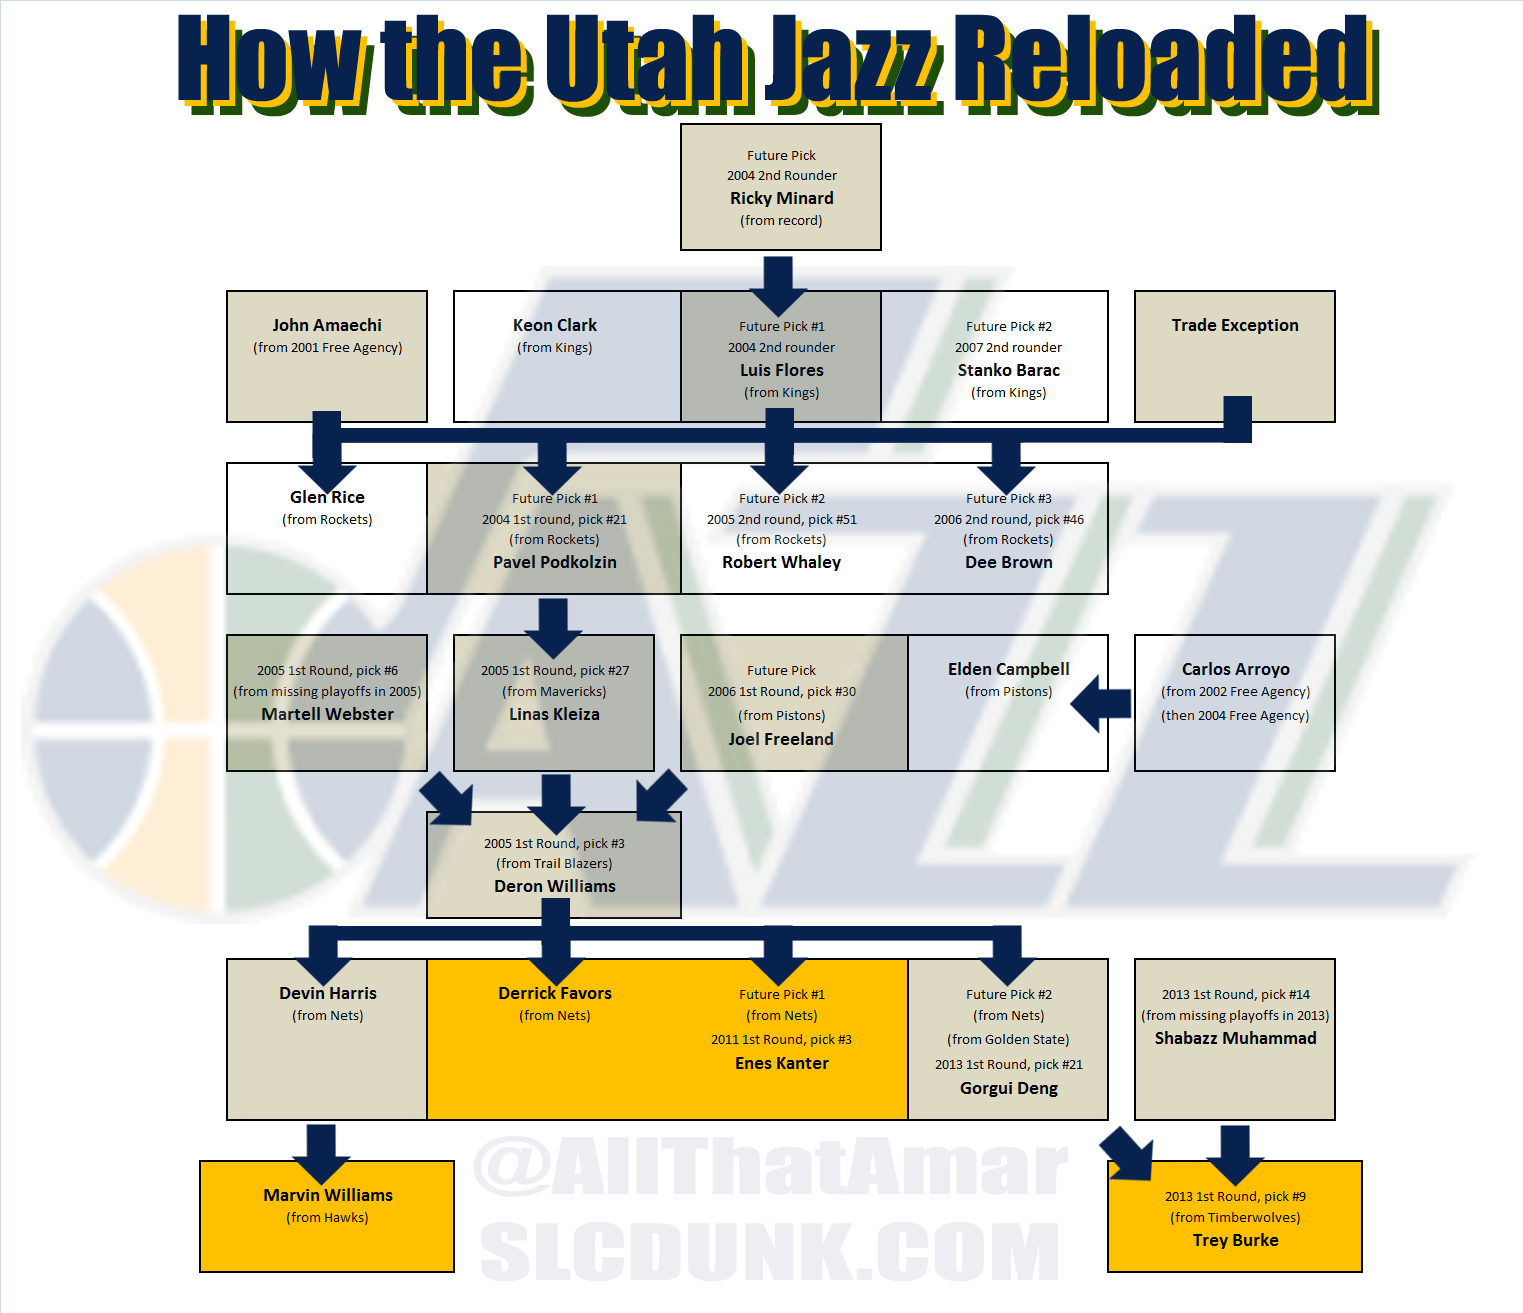 Jazz_rebuild_minard_to_favors_kanter_burke